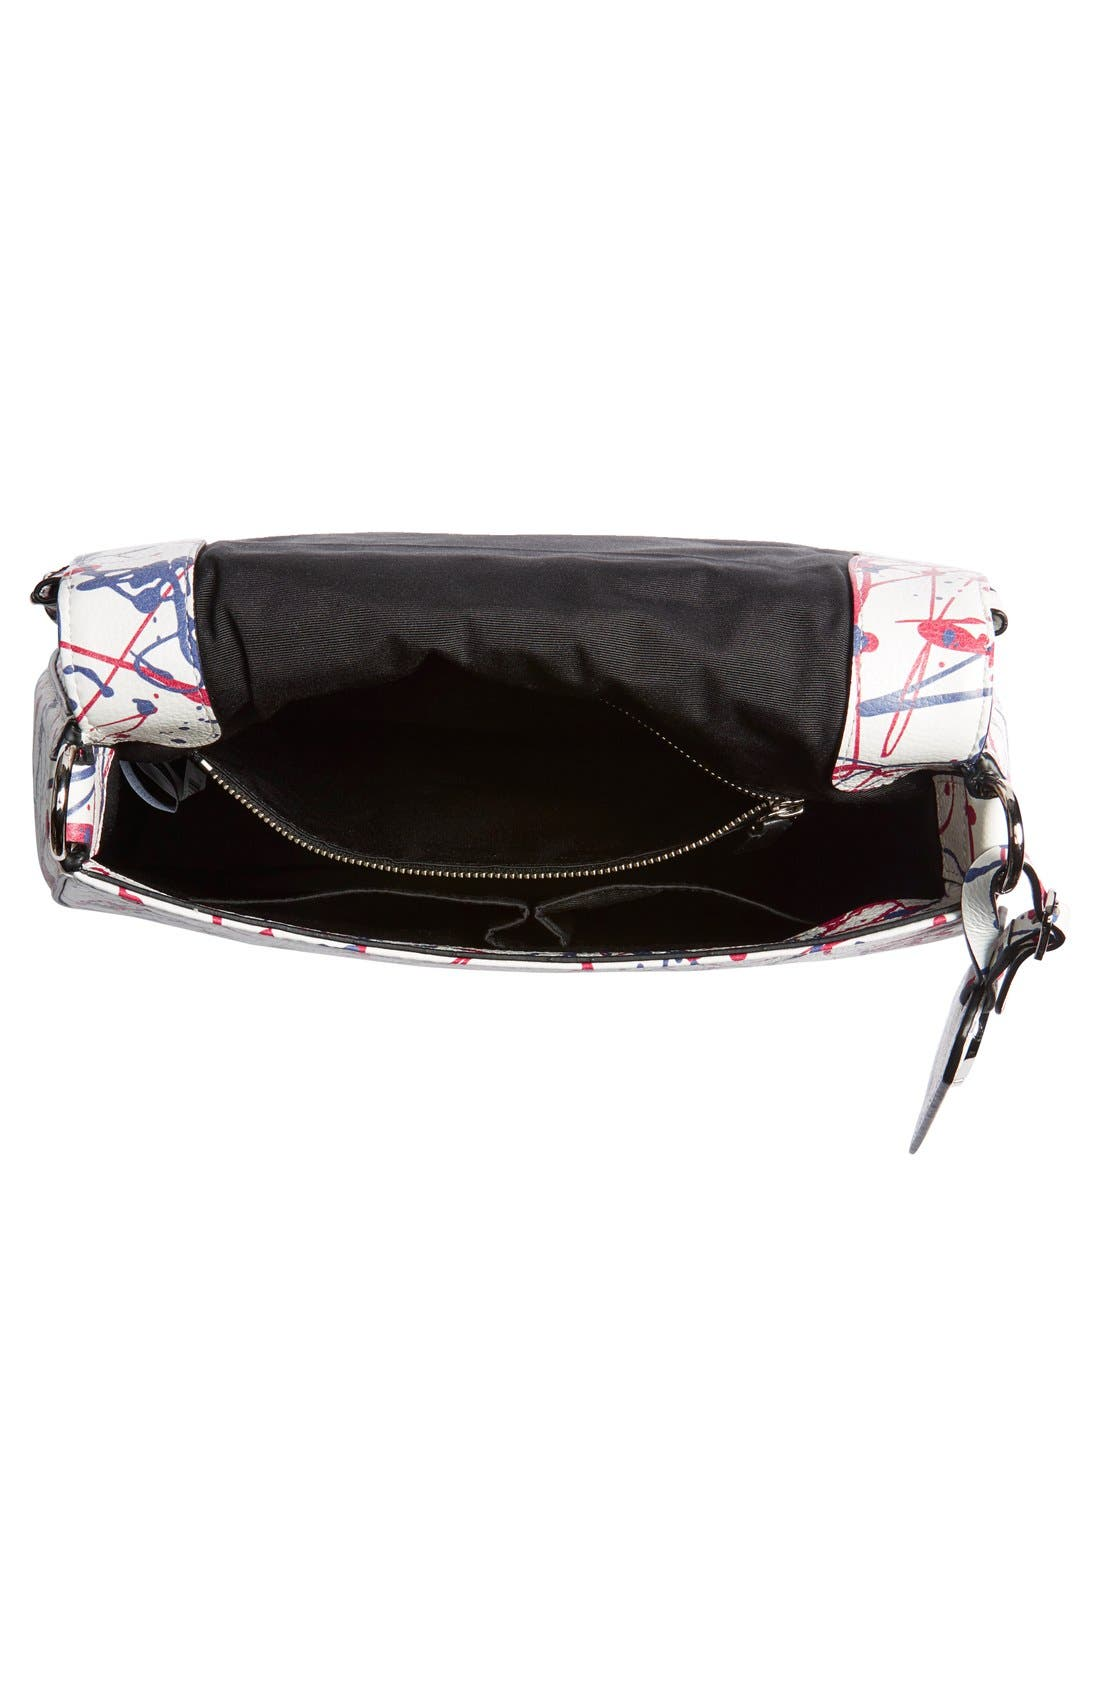 'Splatter Paint' Saddle Bag,                             Alternate thumbnail 5, color,                             100